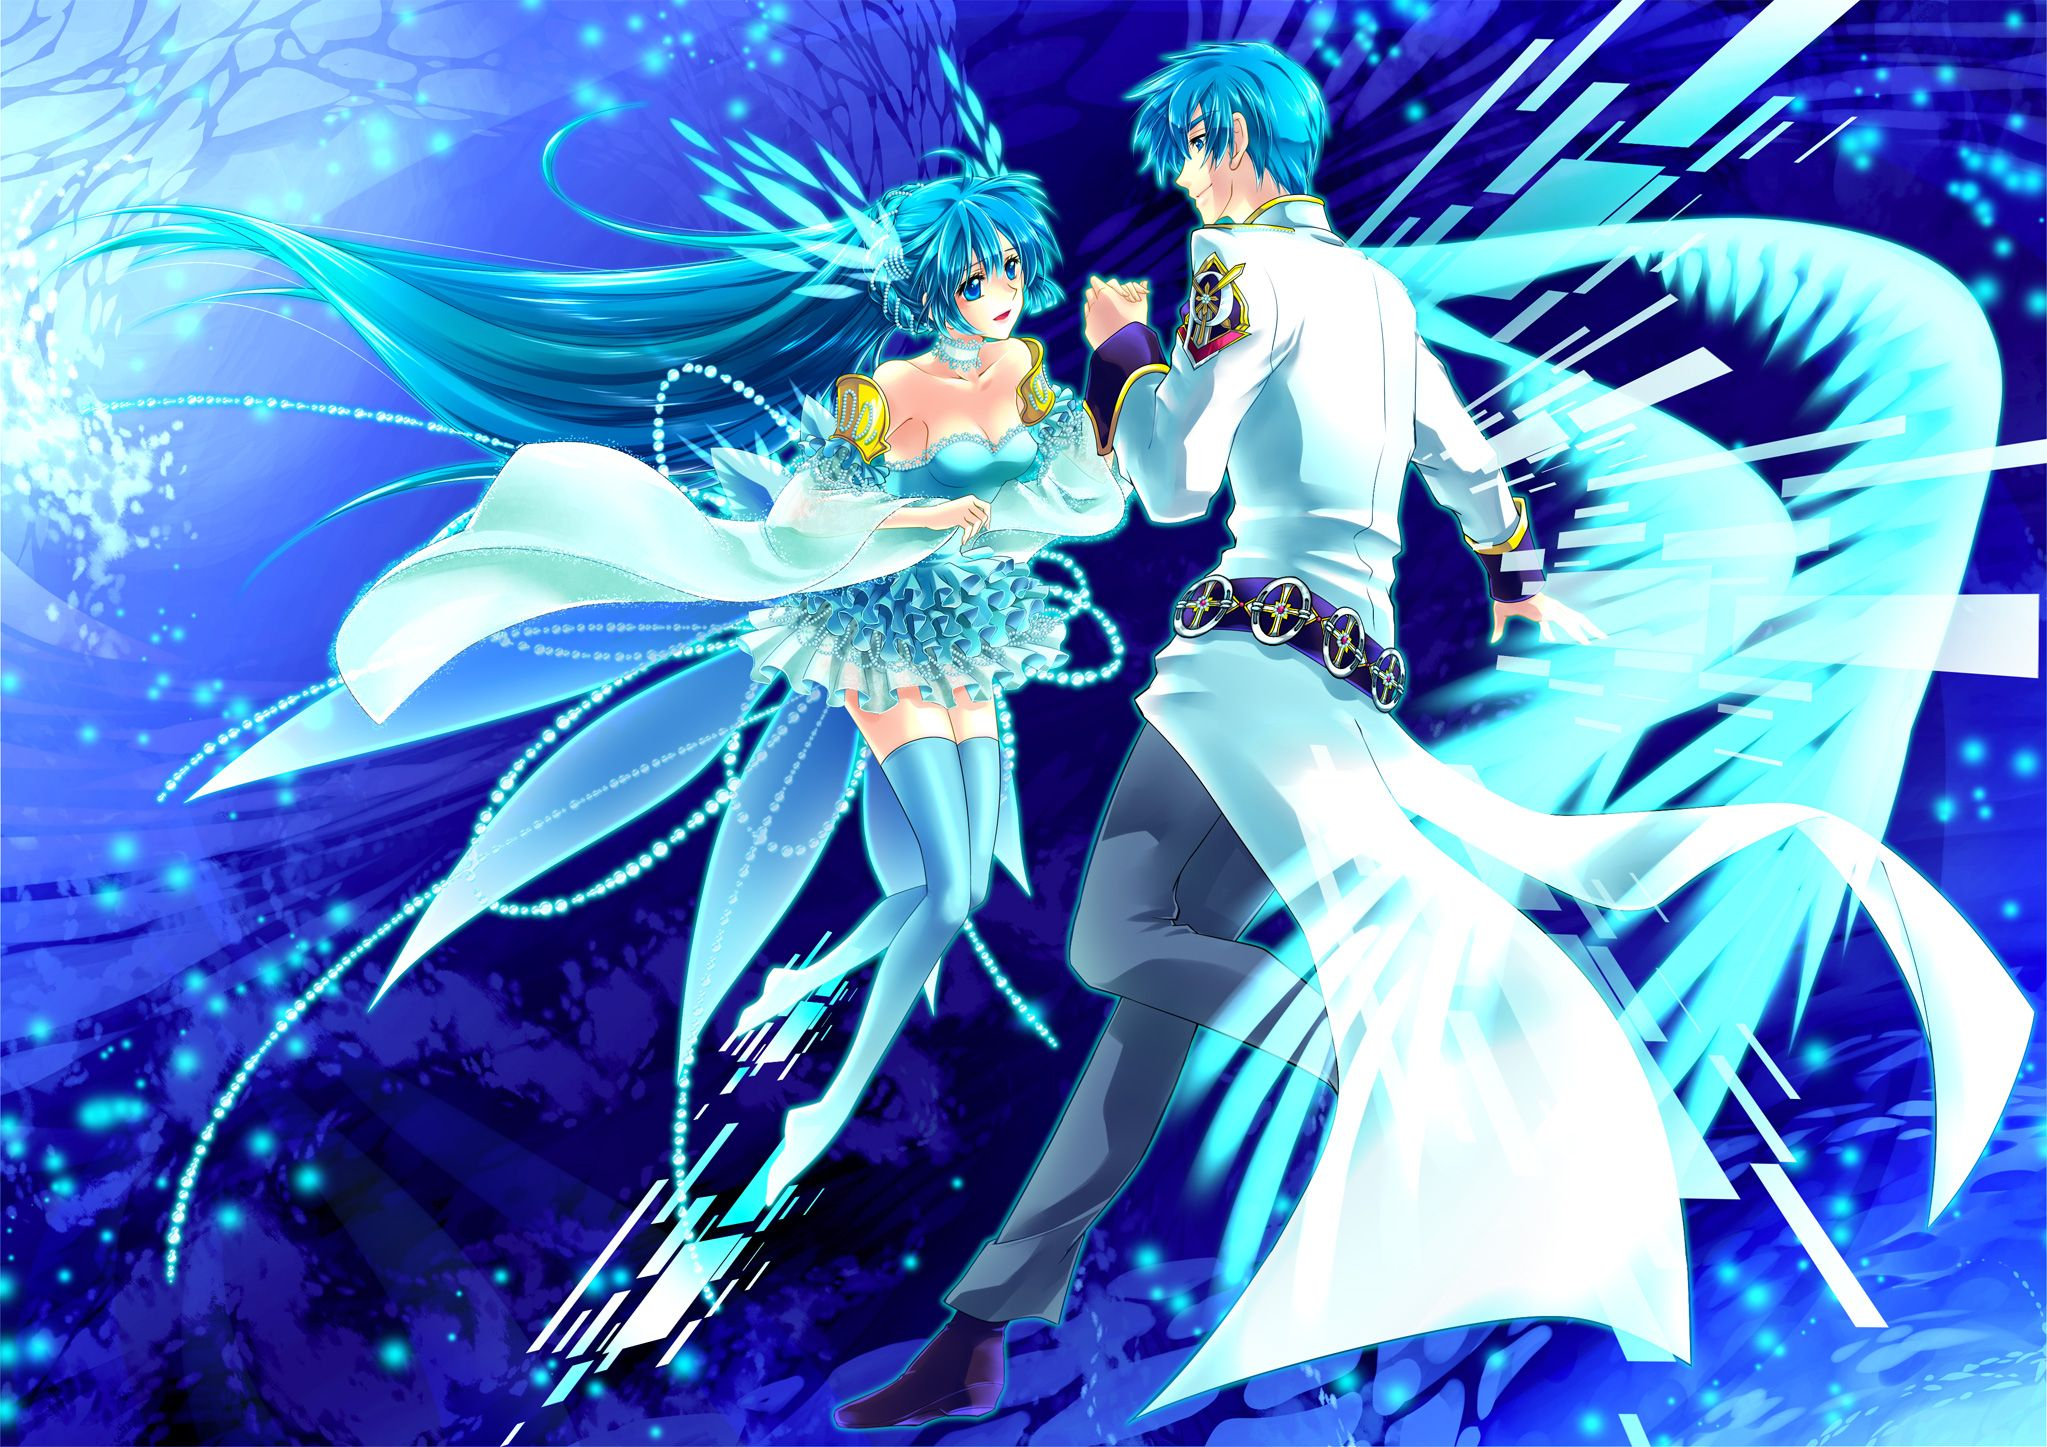 Download Dancing Anime Blue Wallpaper 2047x1447 Full HD